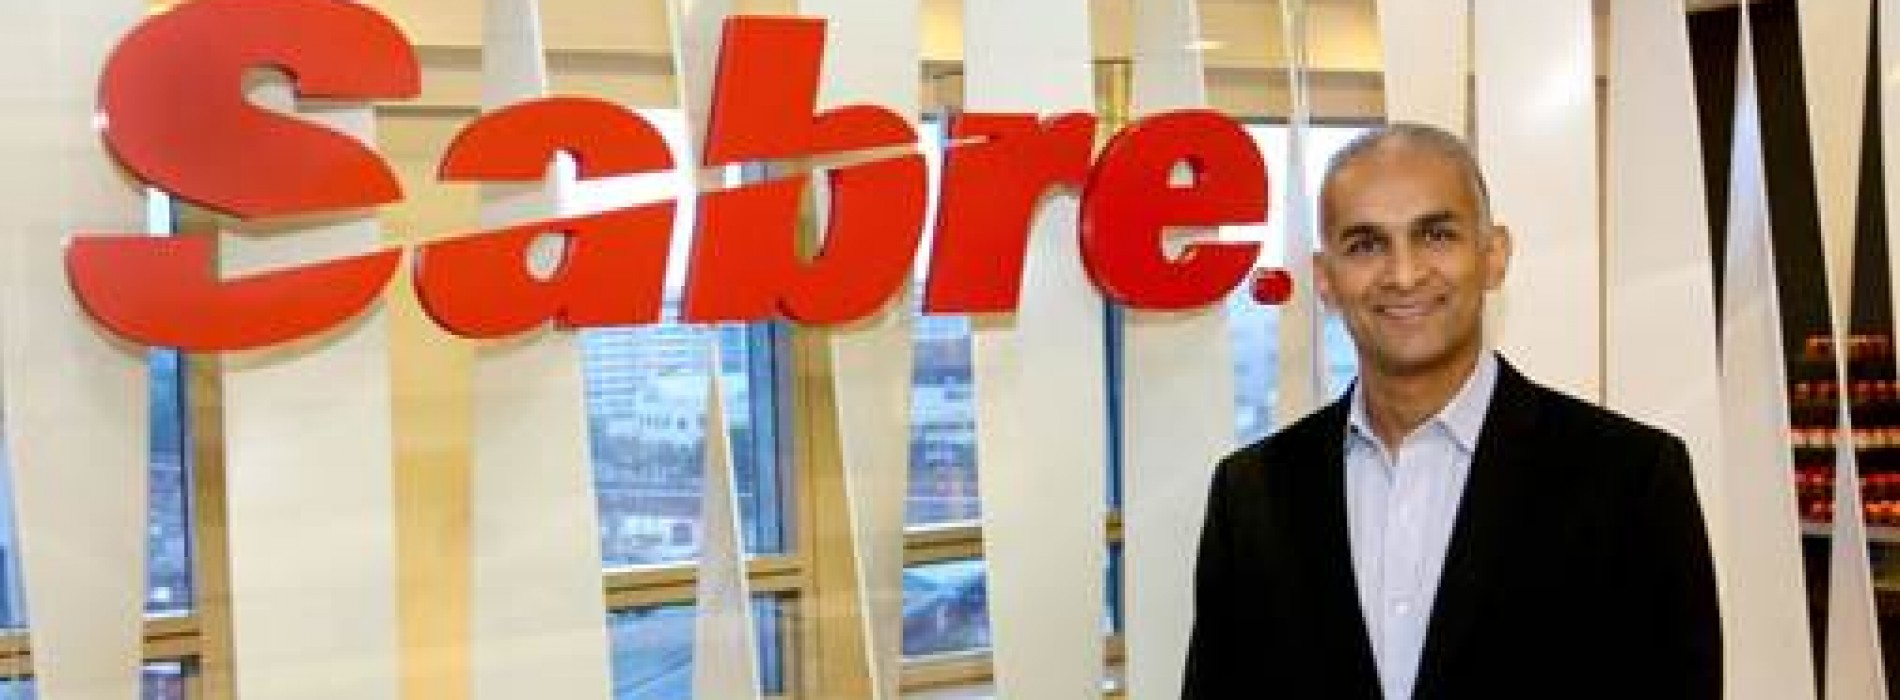 Sabre elevates Roshan Mendis to Chief Commercial Officer for Travel Network